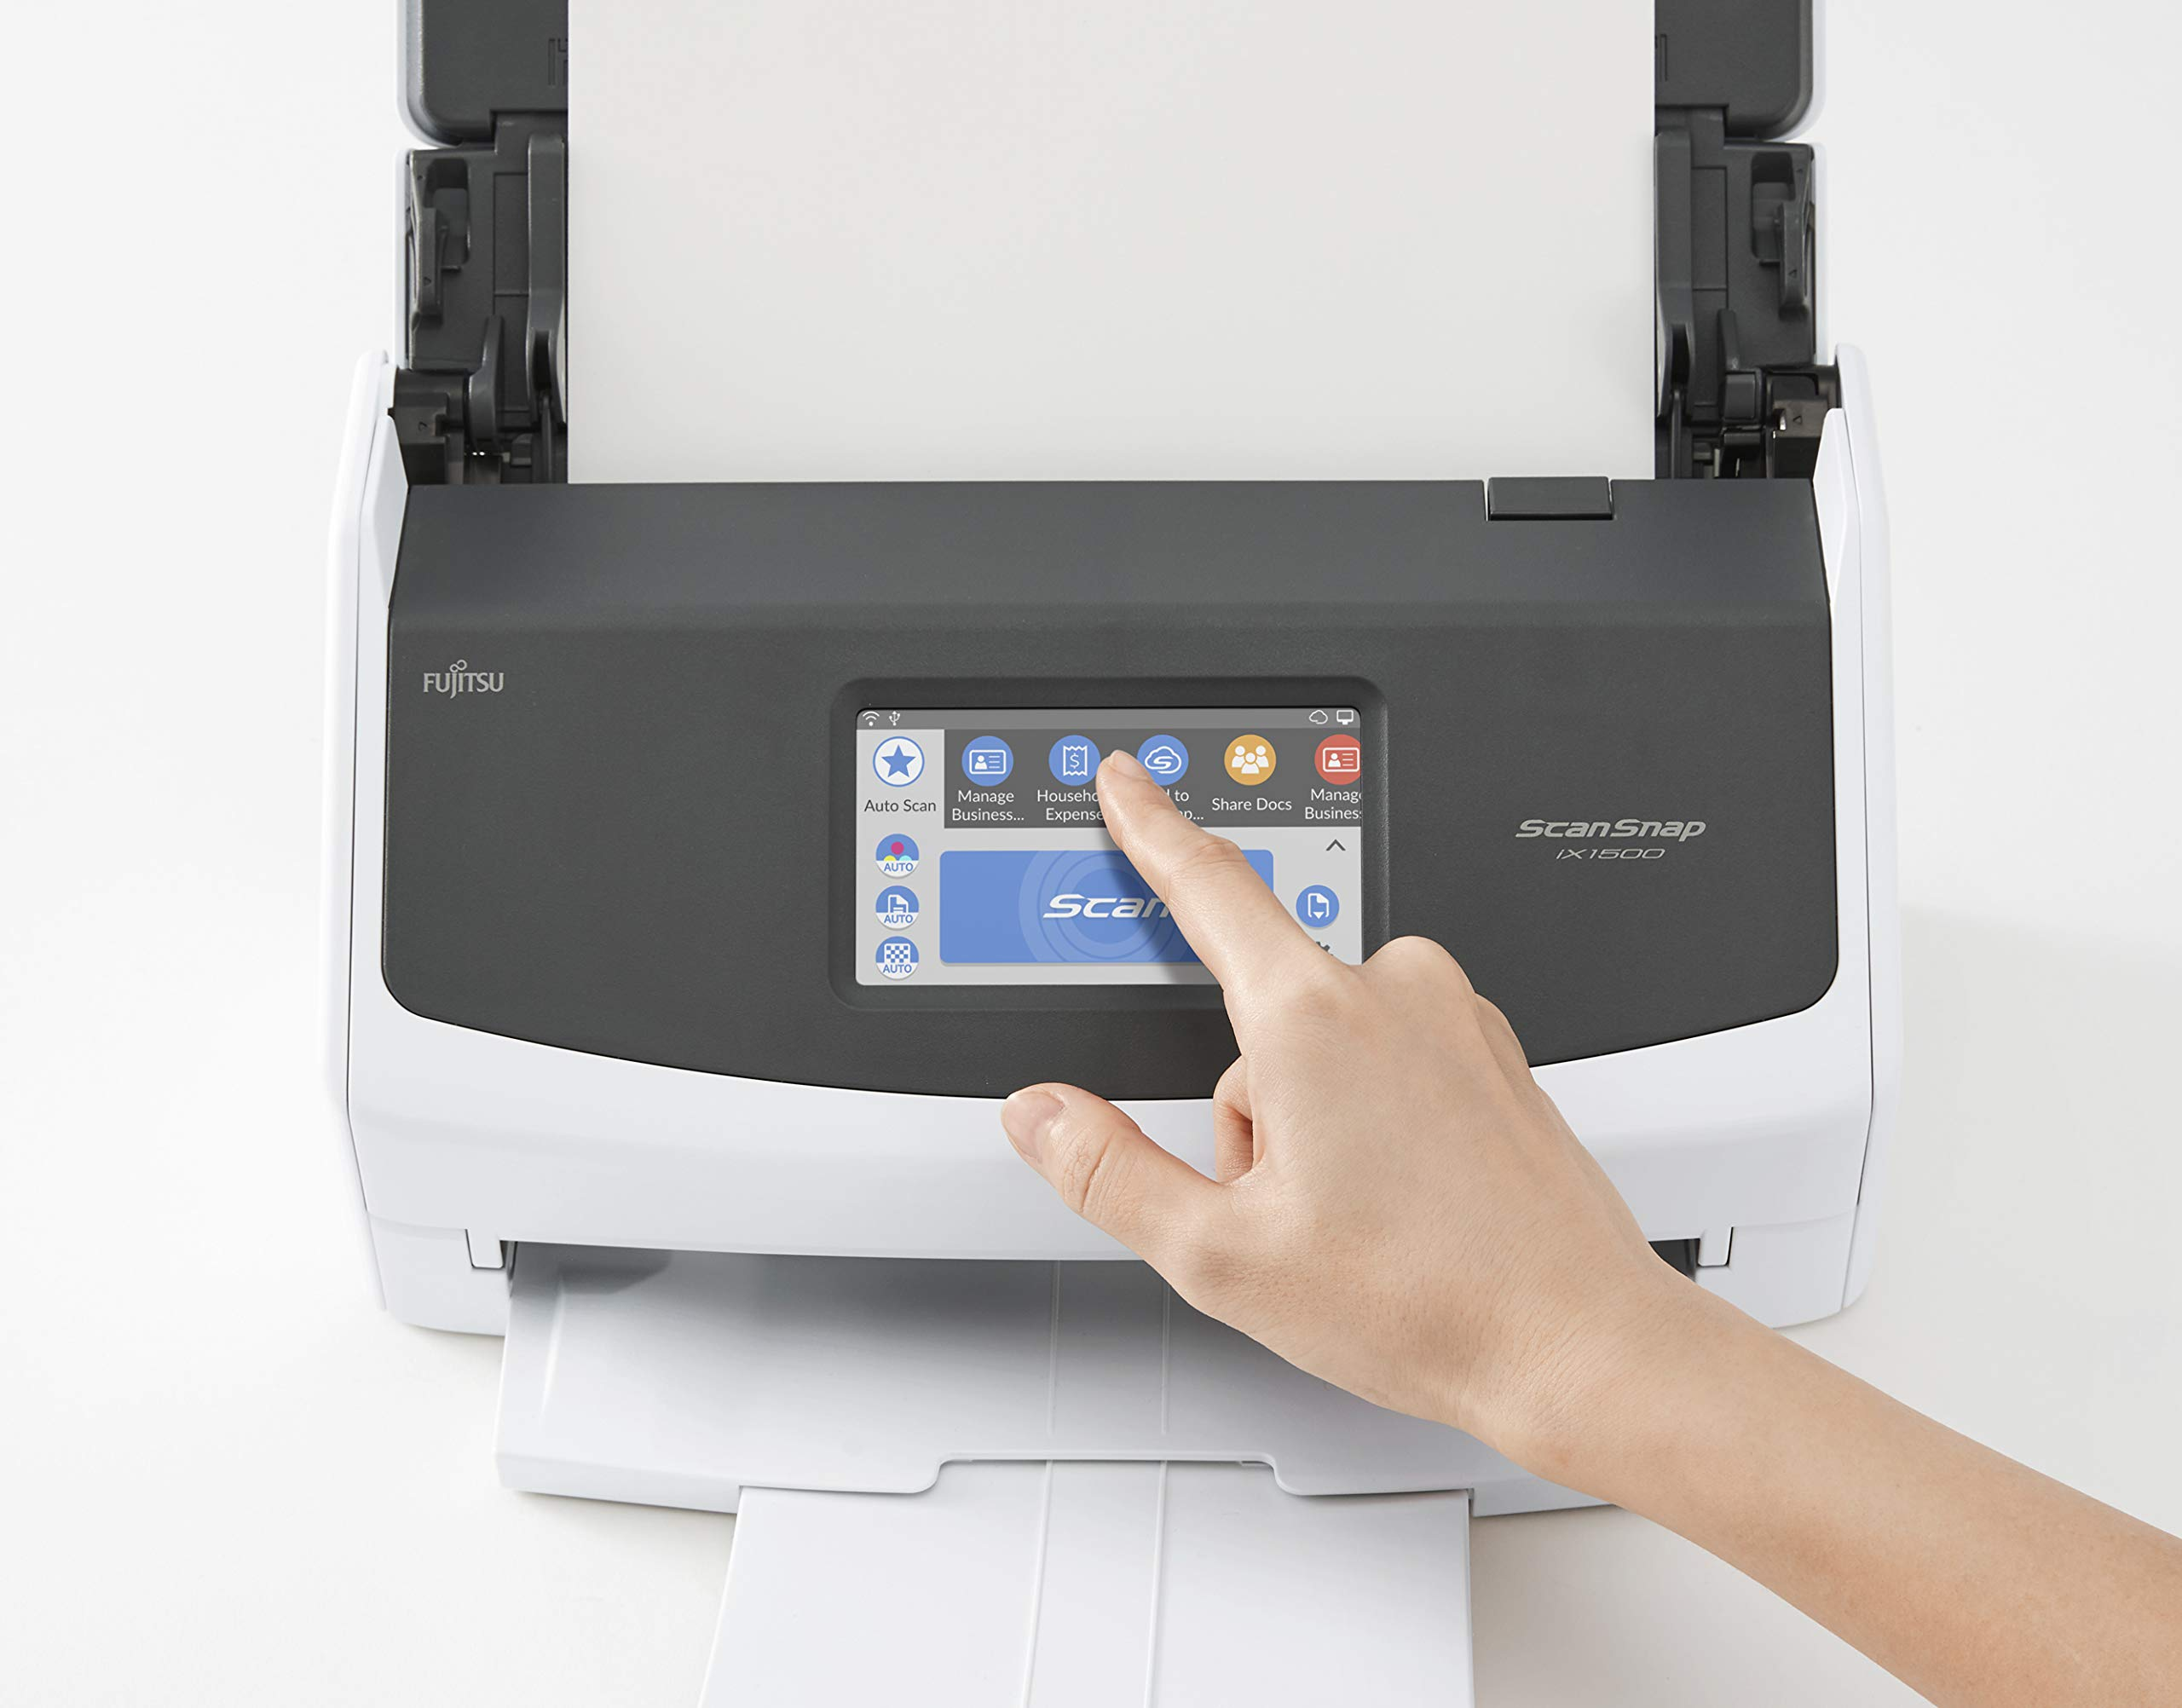 Fujitsu ScanSnap iX1500 Color Duplex Document Scanner with Touch Screen for Mac and PC [Current Model, 2018 Release] by Fujitsu (Image #4)